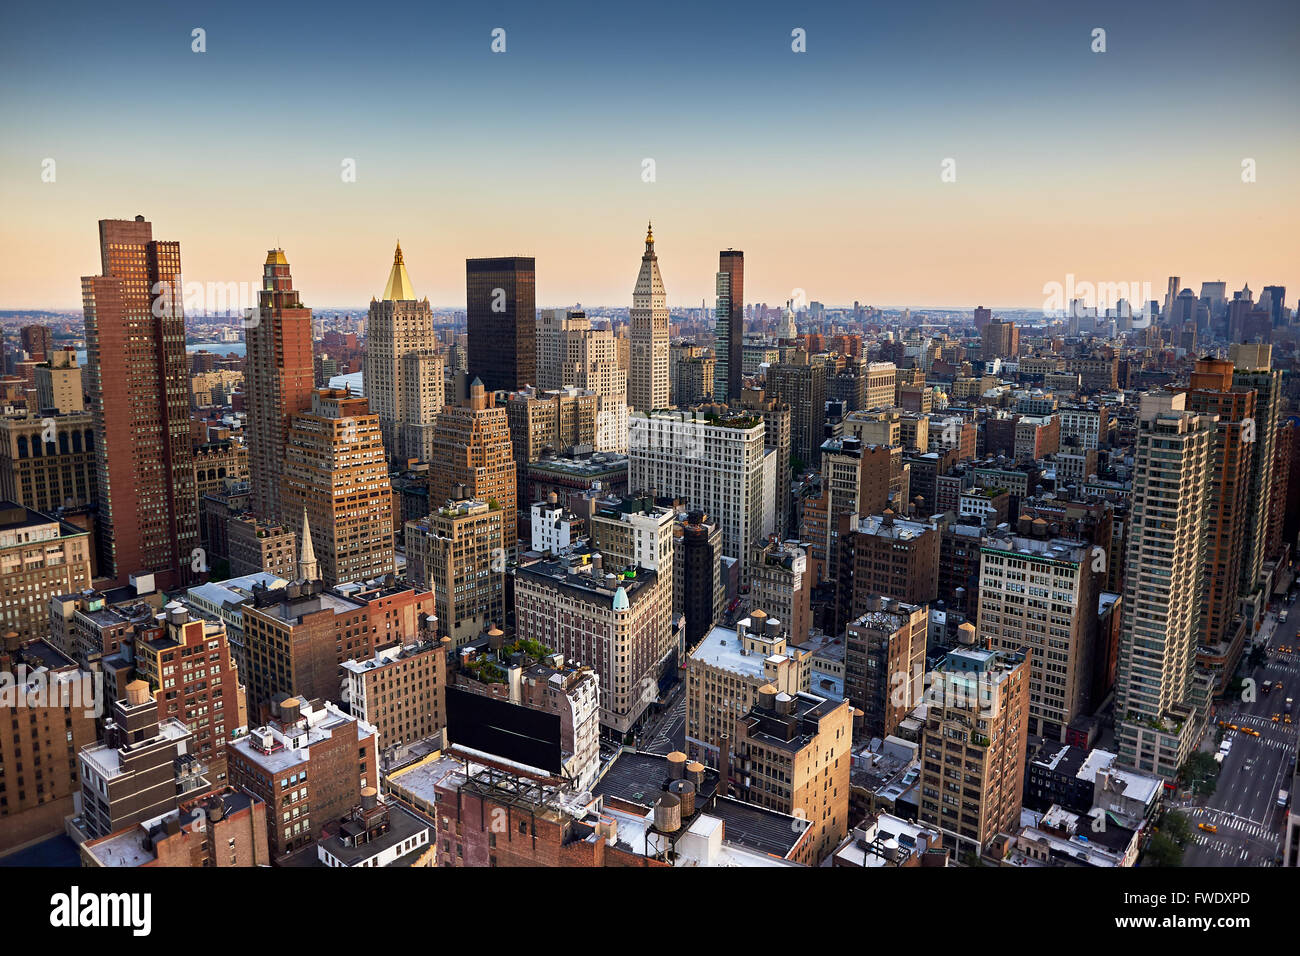 Evening view from a high building of Midtown, New York City Stock Photo